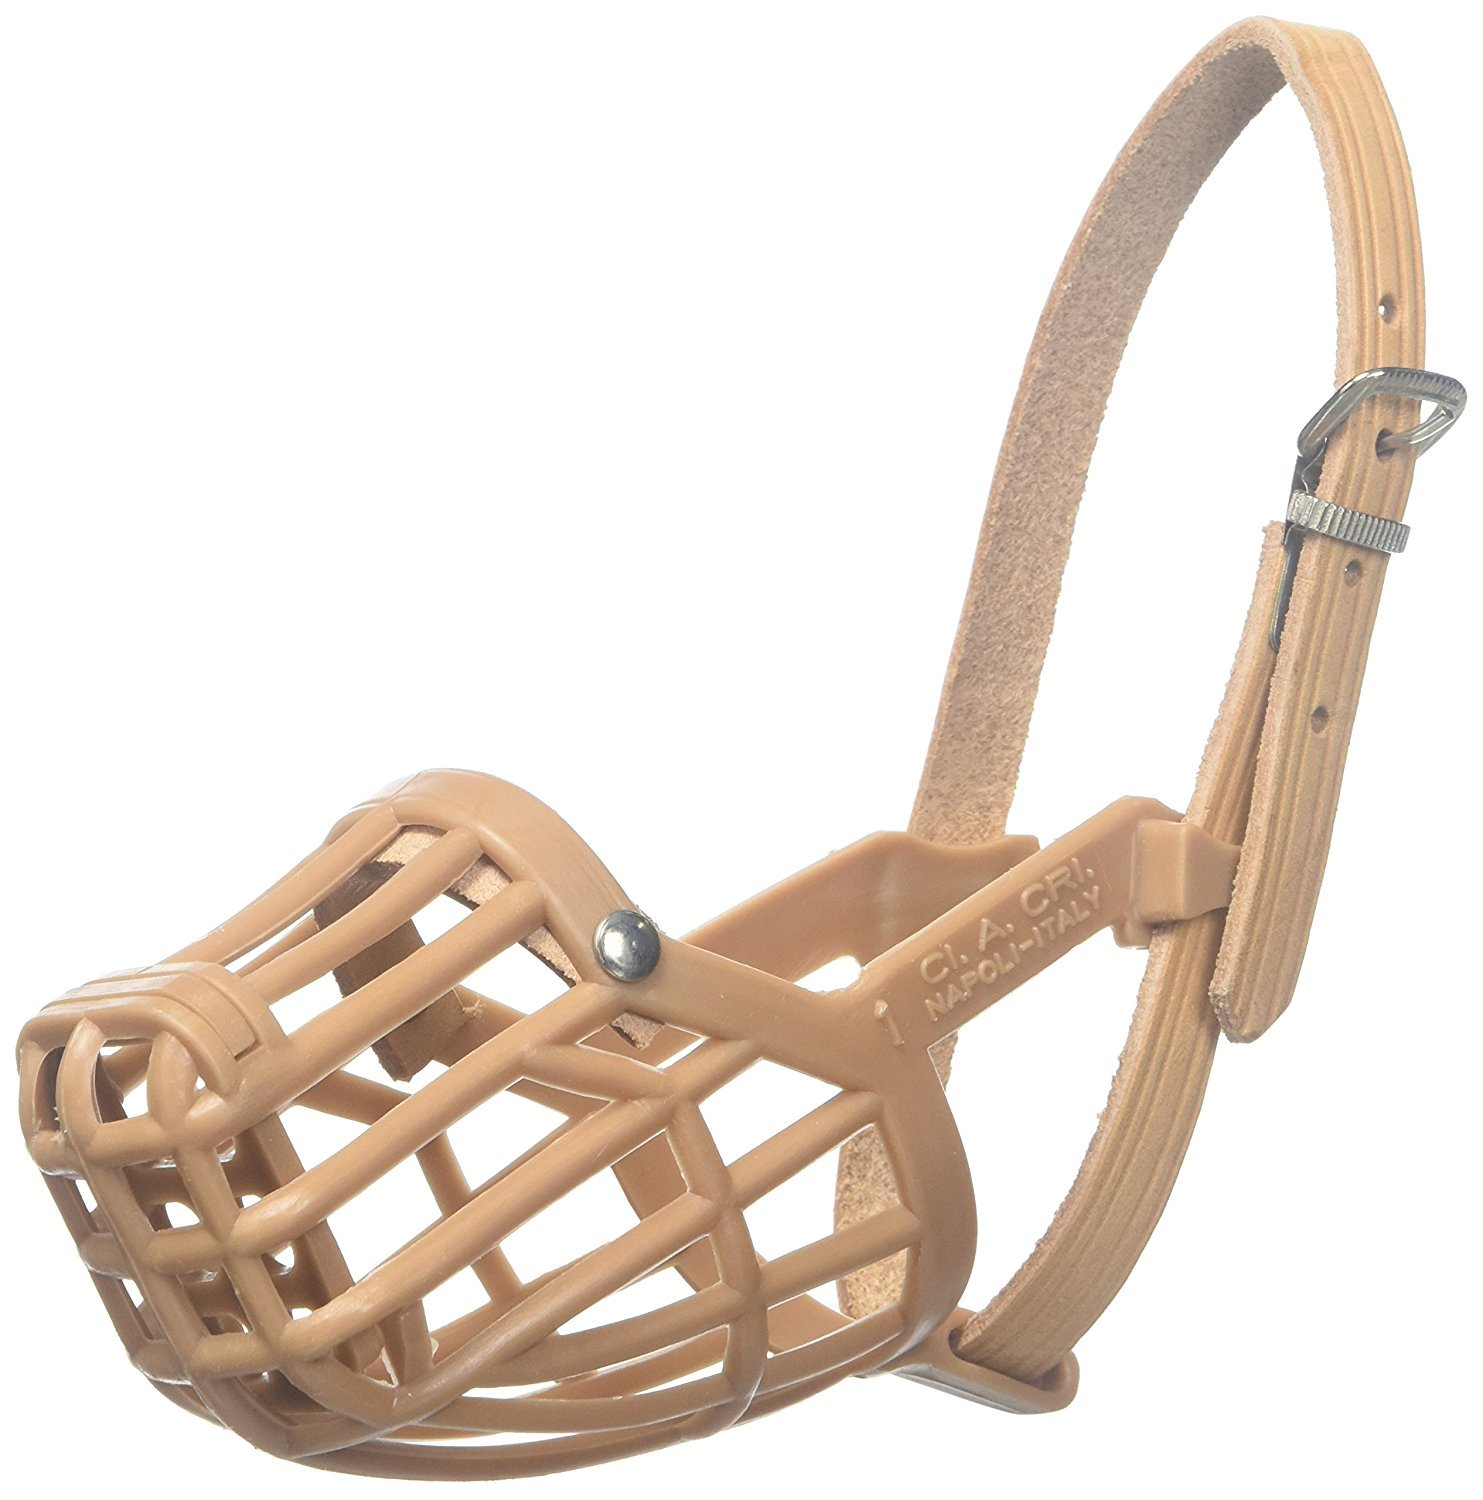 OmniPet M180-6 Italian Basket Dog Muzzle, Size 6, Tan Cathay Fenix (Sports) - CA